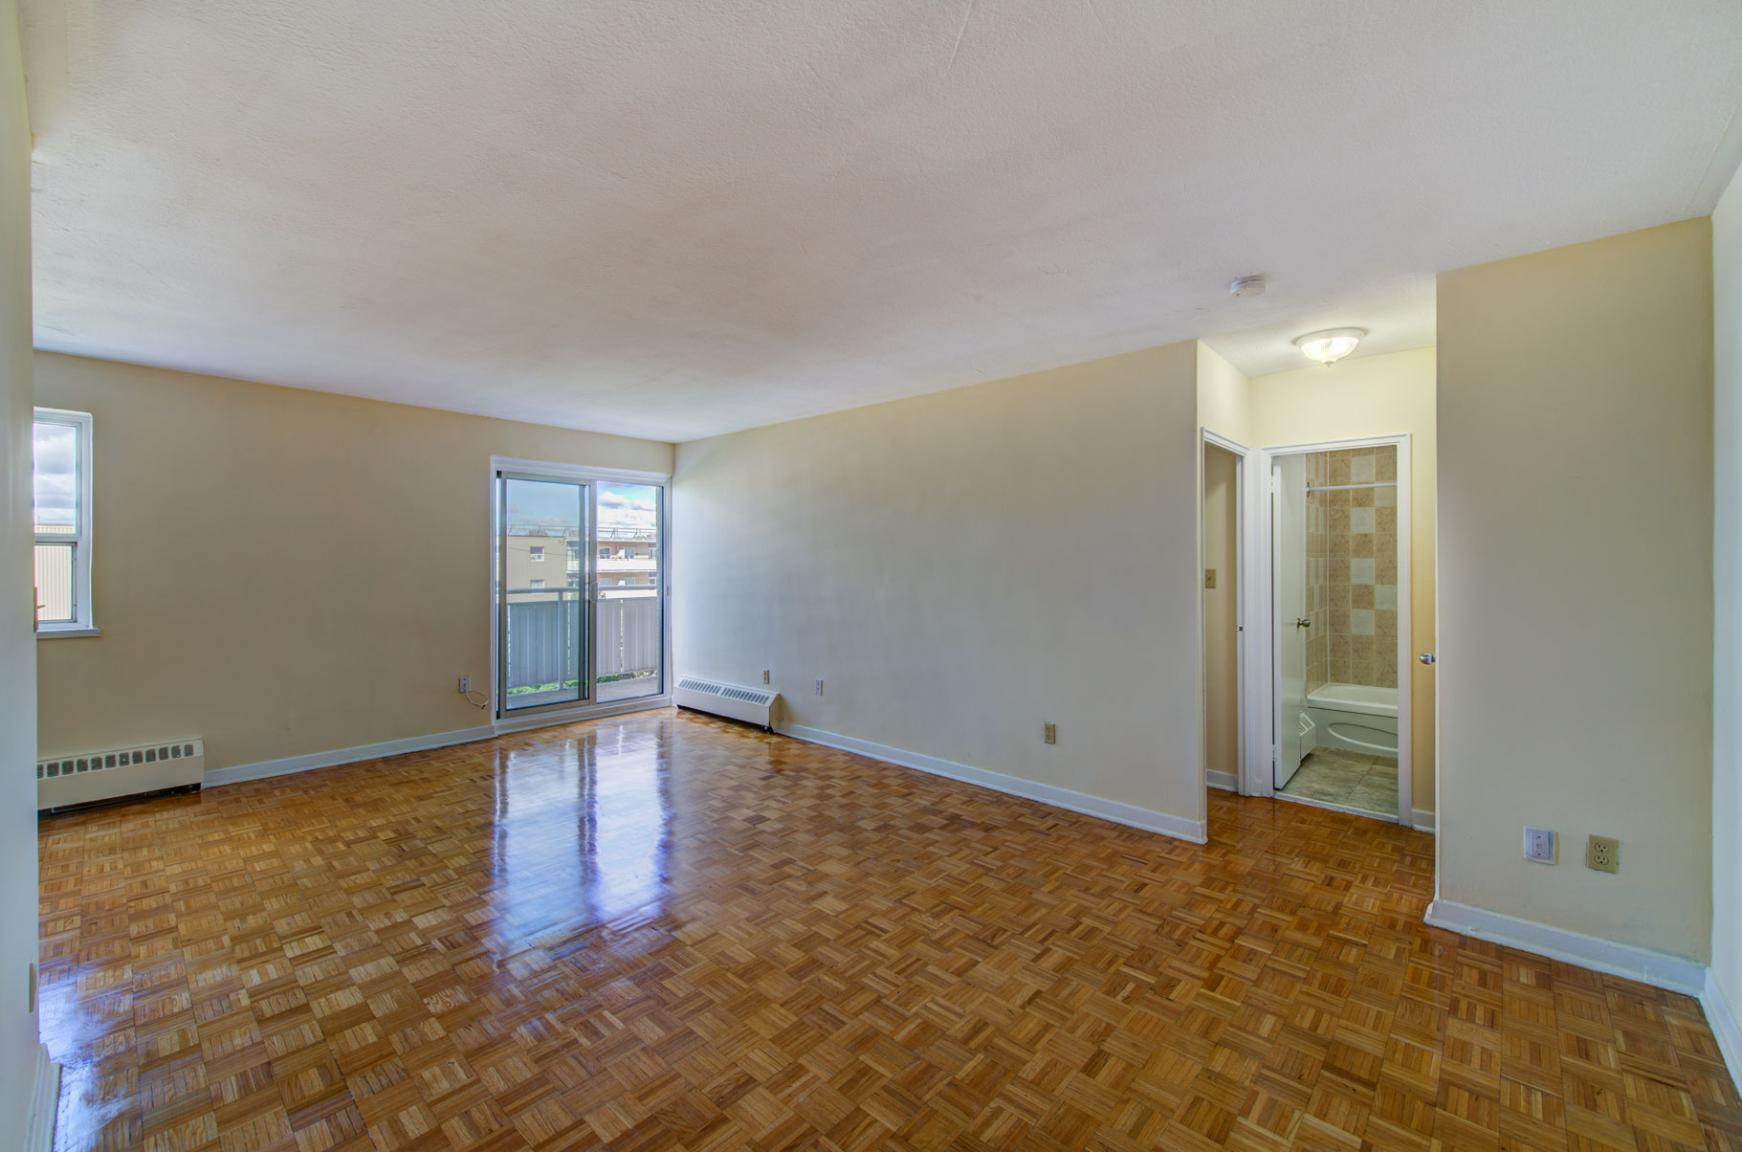 1 bedroom Apartments for rent in Toronto at Lake Promenade Community - Photo 15 - RentersPages – L140453